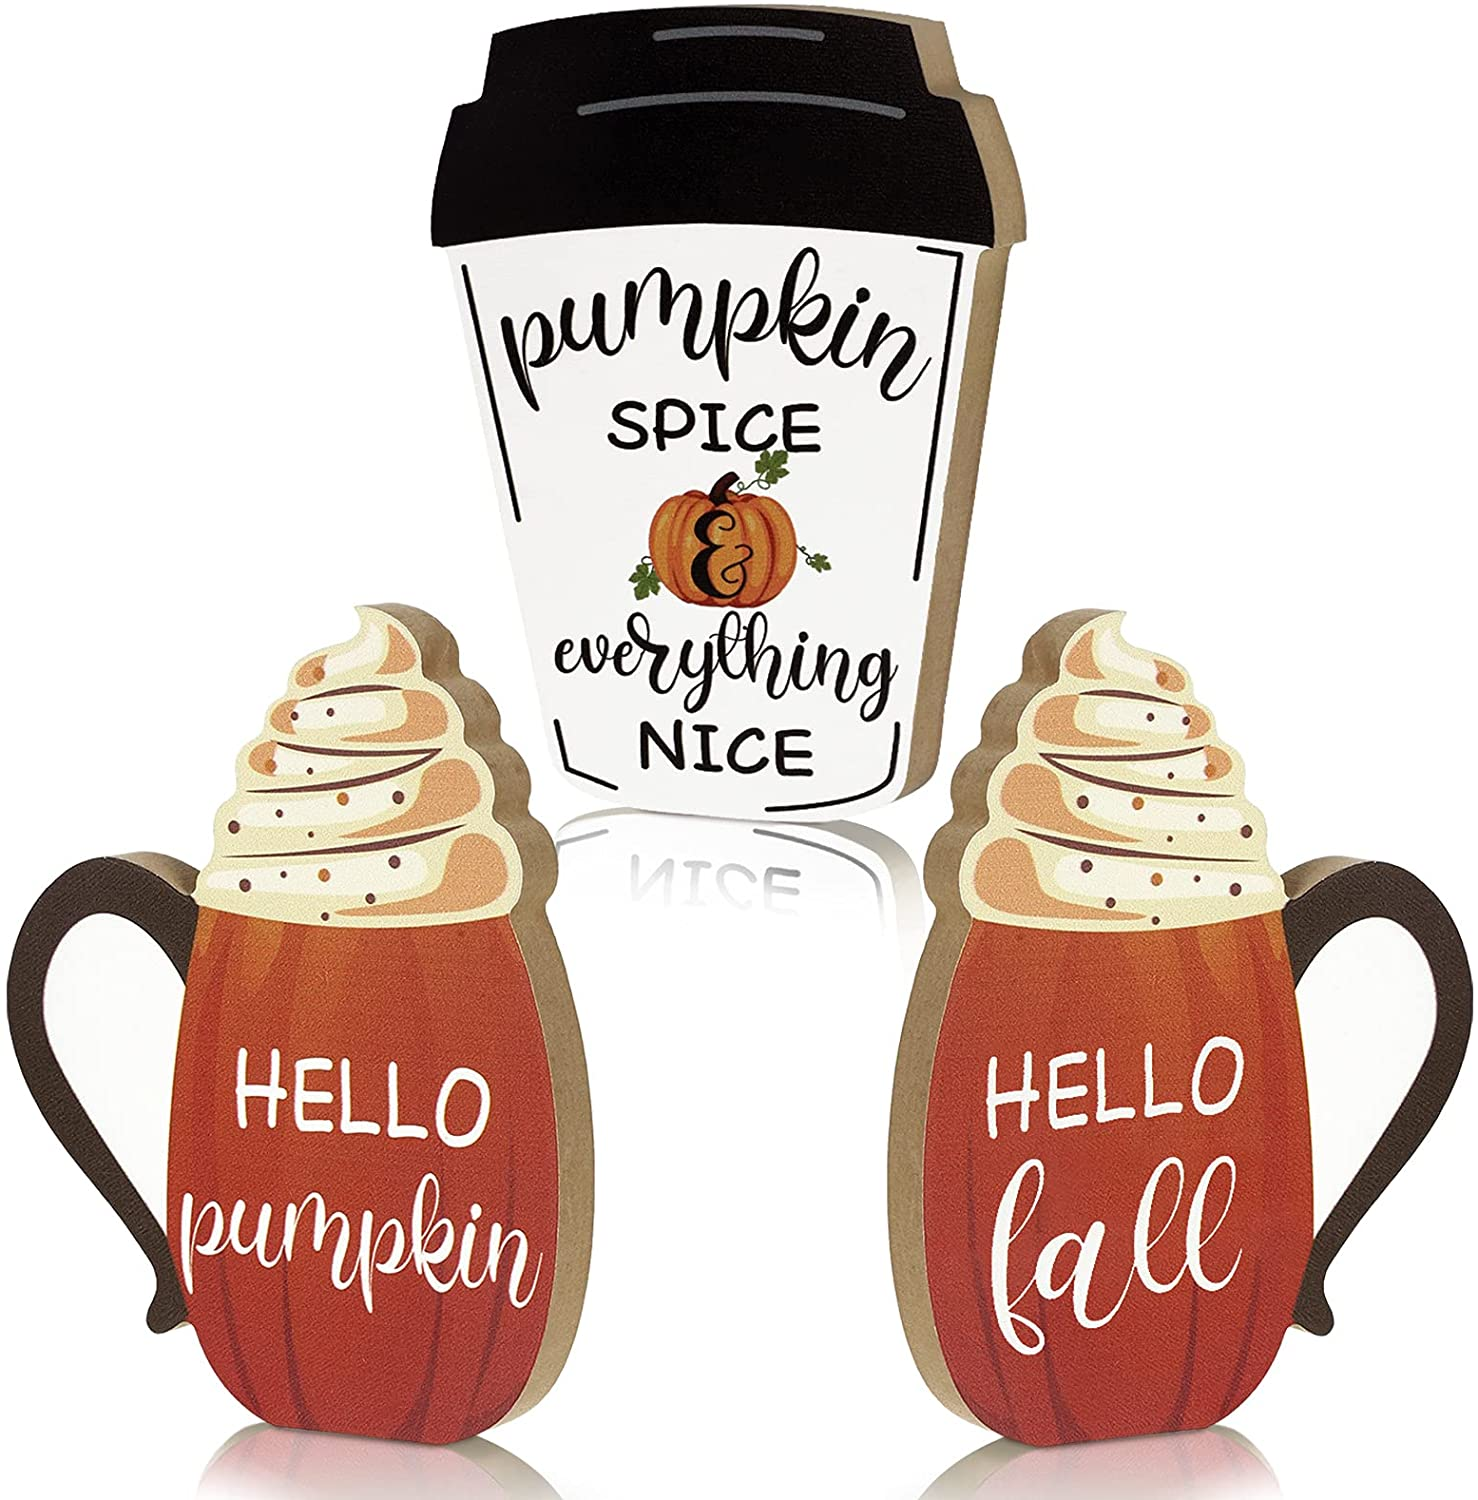 3 Pieces Fall Wooden Signs Fall Harvest Tabletop Signs Thanksgiving Pumpkin Decor Sign Welcome Fall Decor Pumpkin Wooden Block Sign for Home Tabletop Decorations